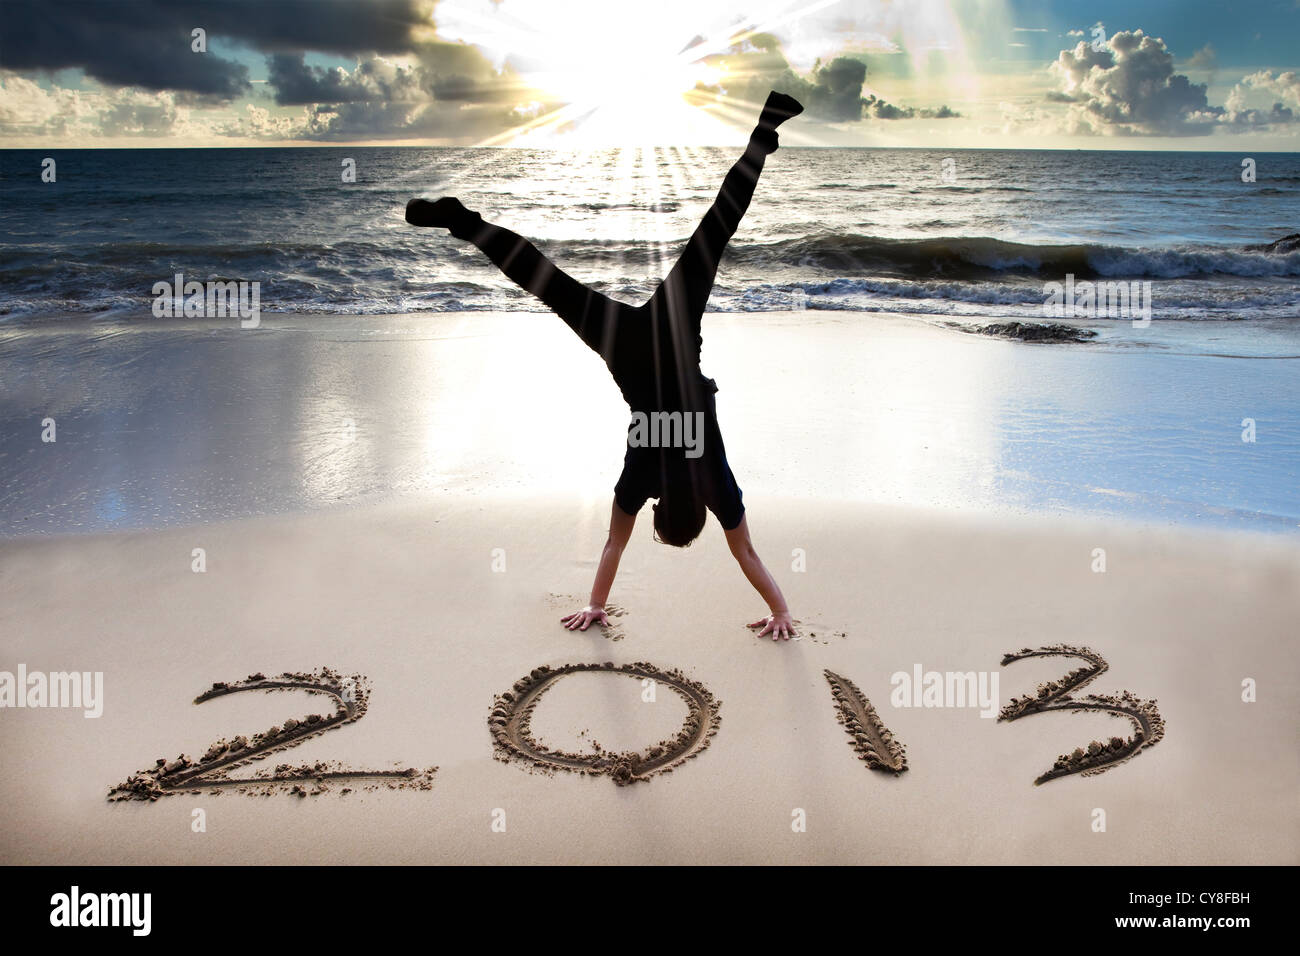 happy new year 2013 on the beach - Stock Image